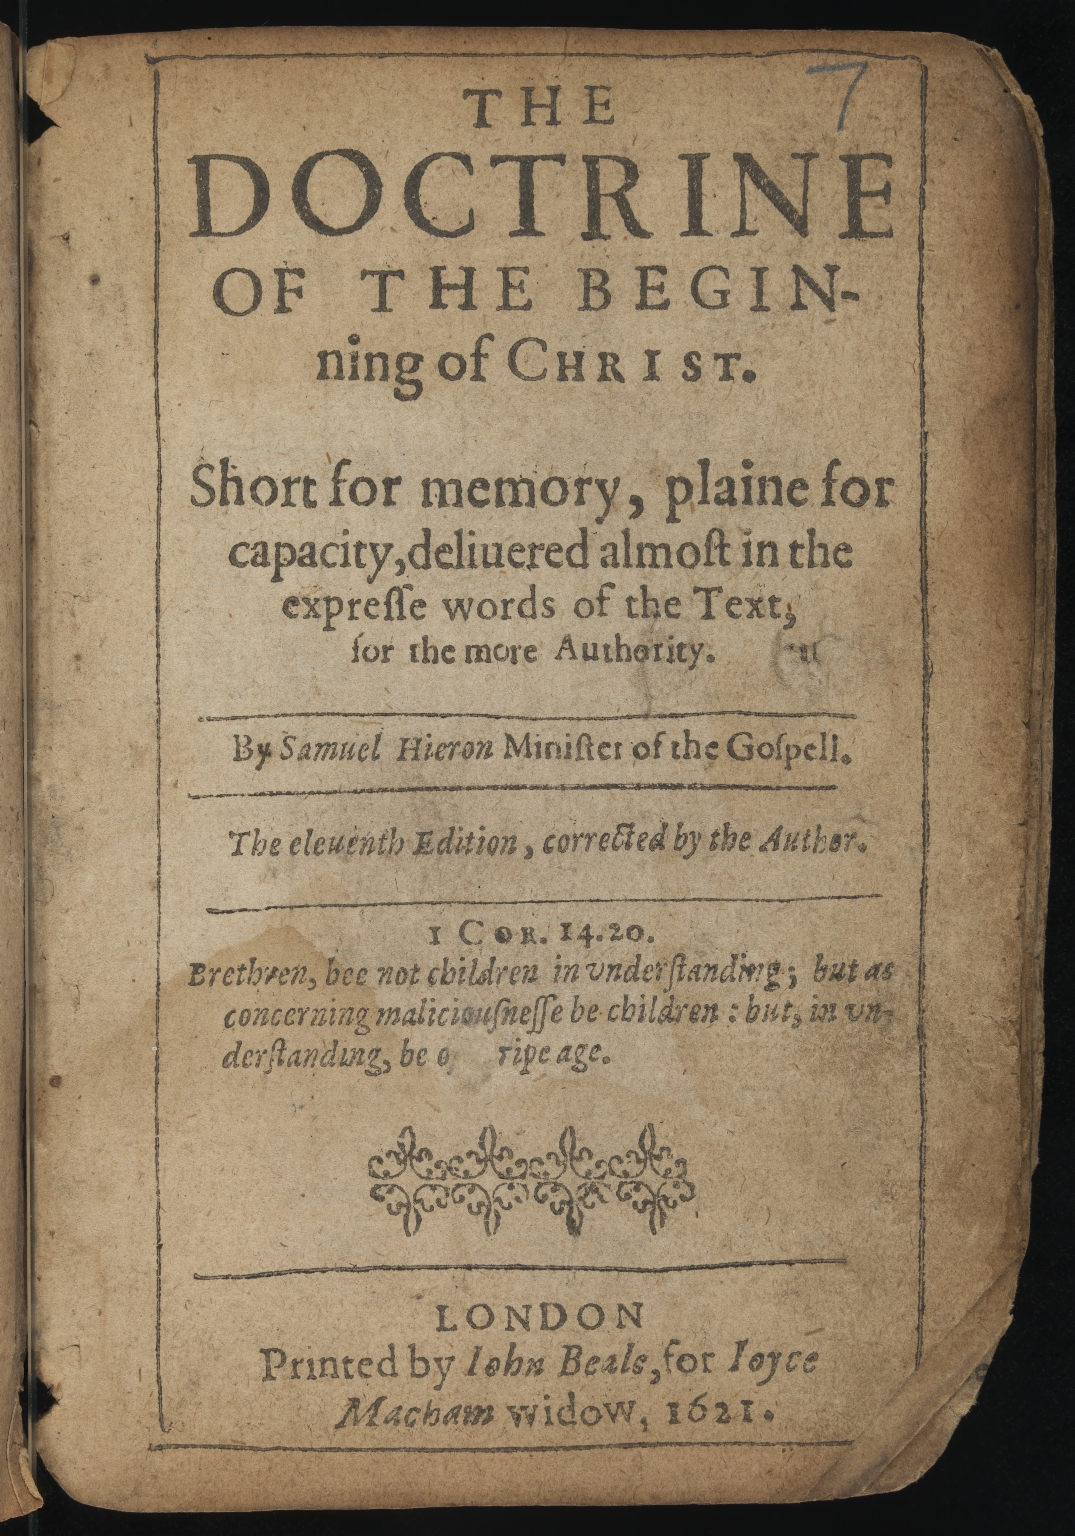 The doctrine of the beginning of Christ, Title page